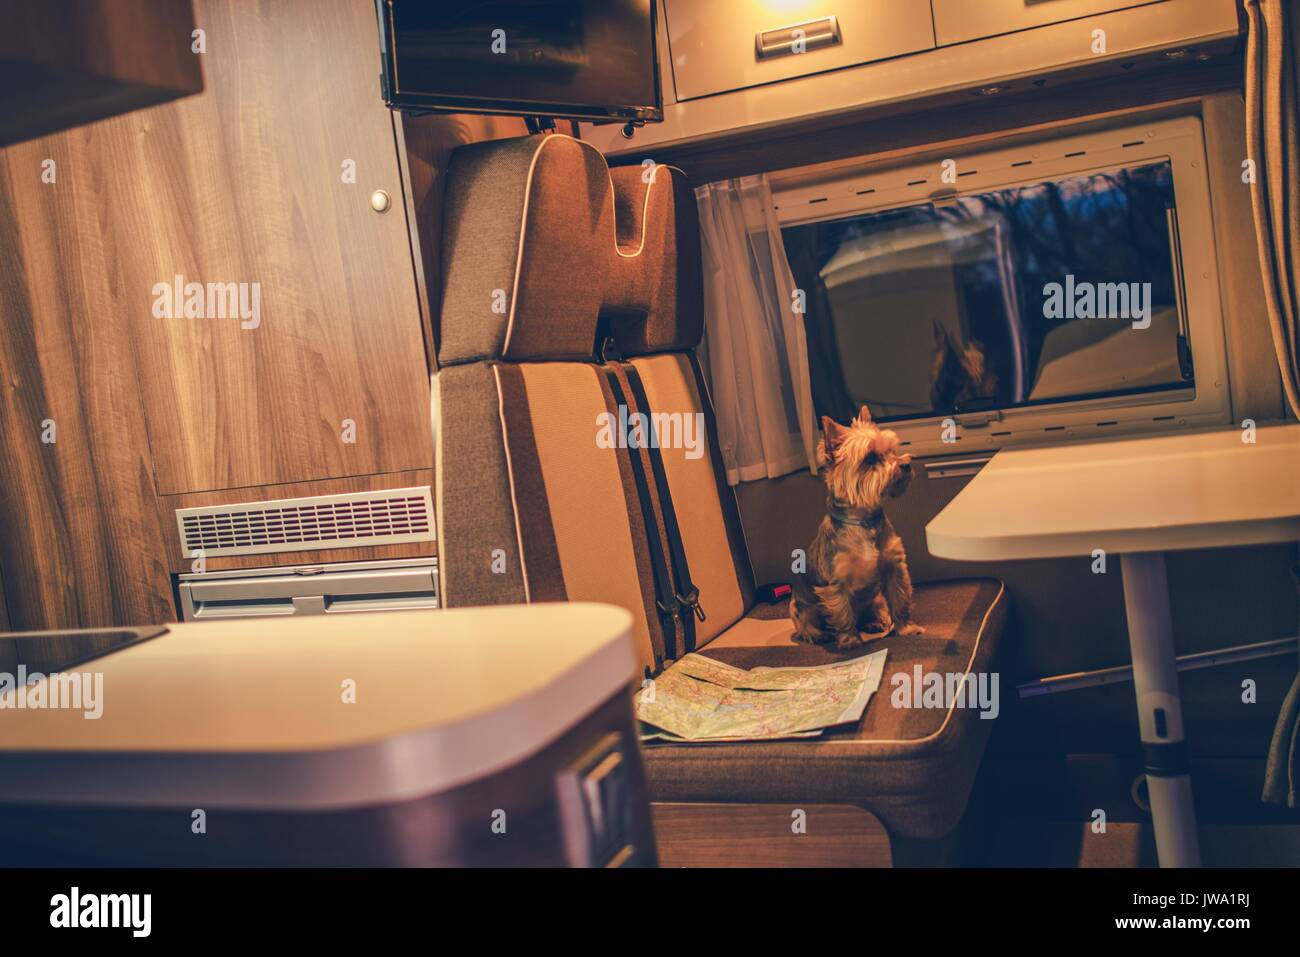 Pet In A Camper RV Motorhome Australian Silku Terrier The Van Seating Next